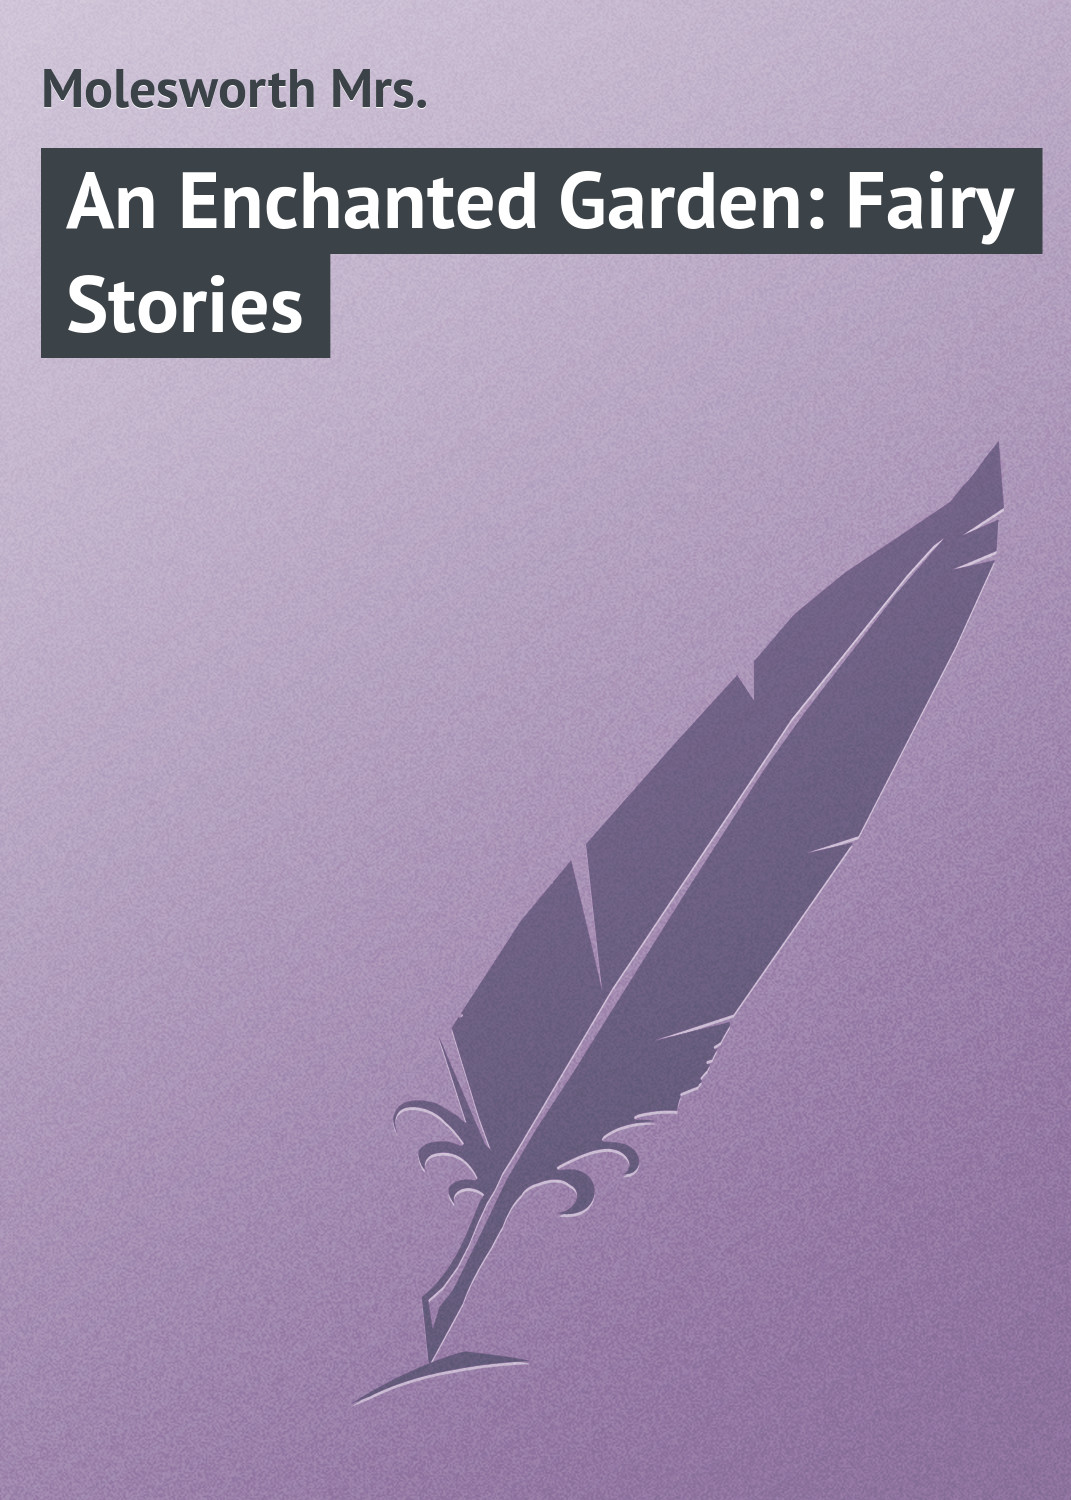 An Enchanted Garden: Fairy Stories